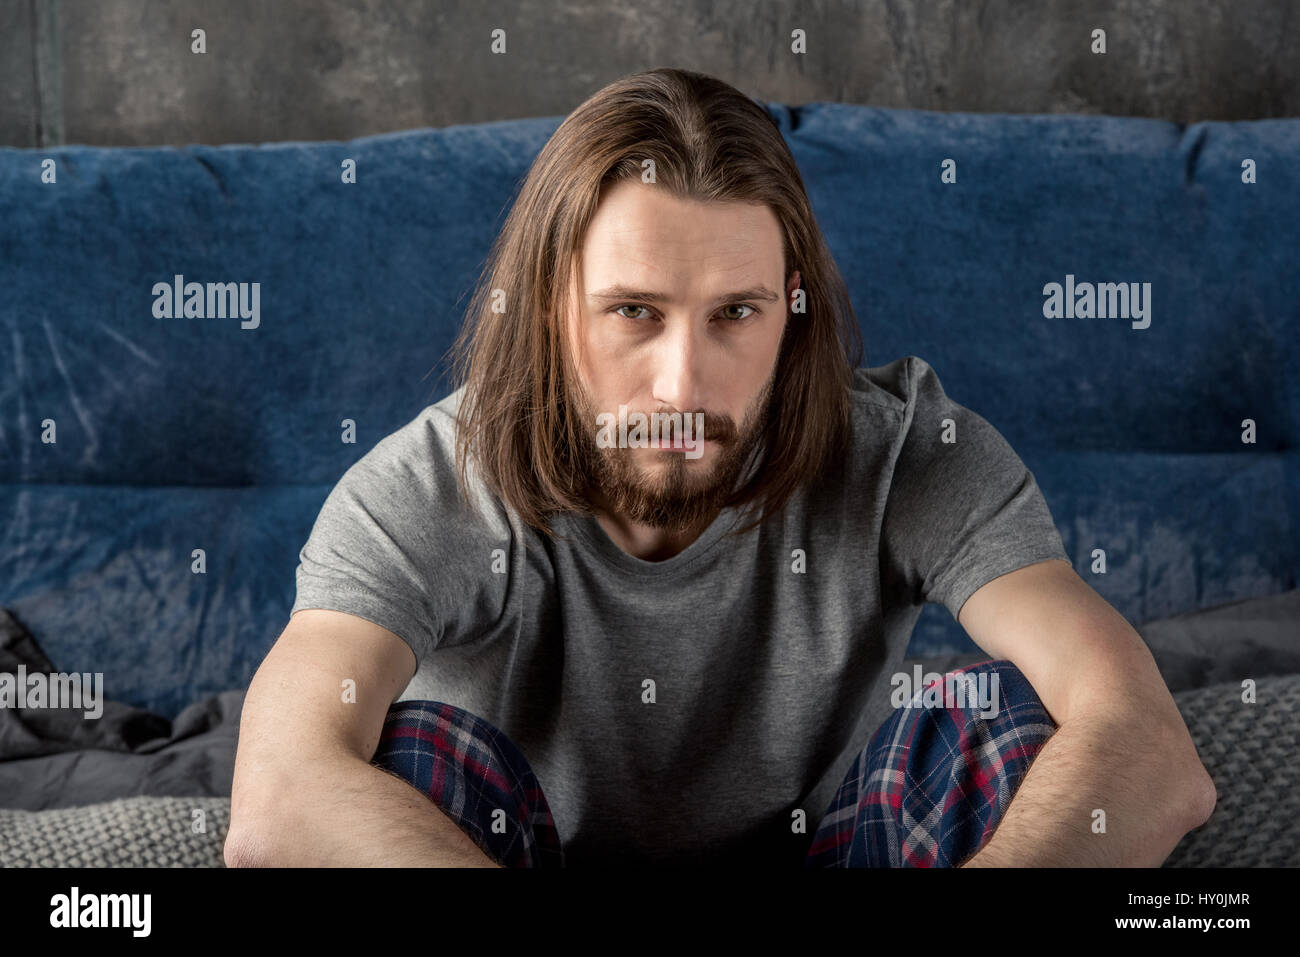 Serious bearded man sitting in bed and looking at camera - Stock Image